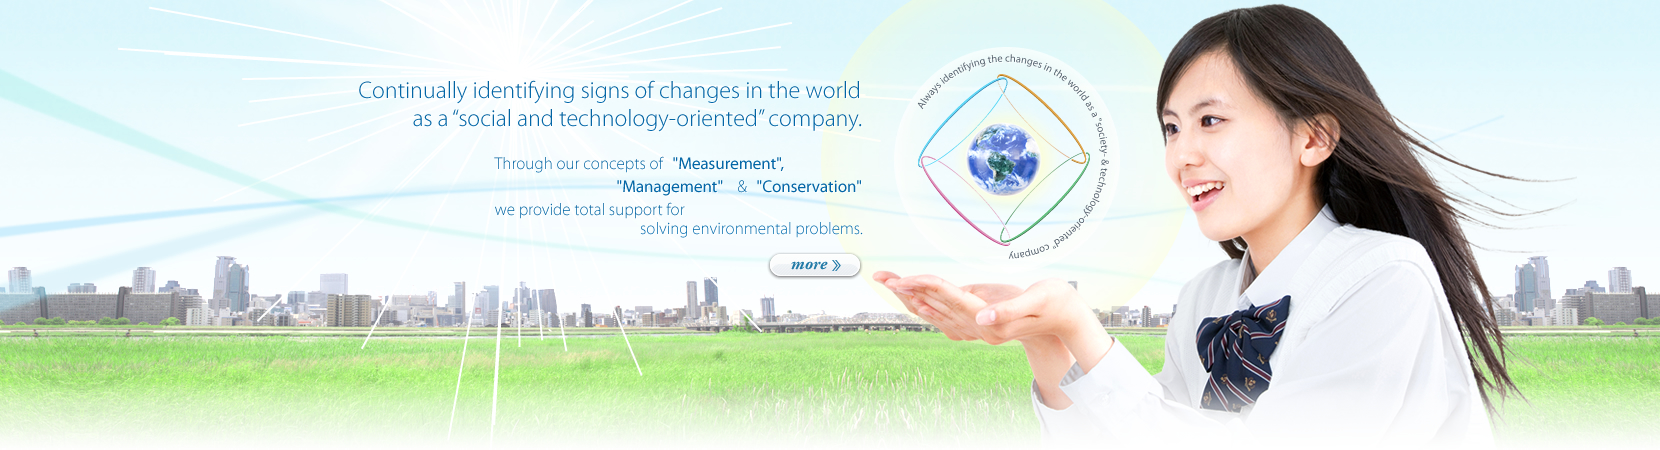 "Continually identifying signs of changes in the world as a""social and technology-oriented""company.